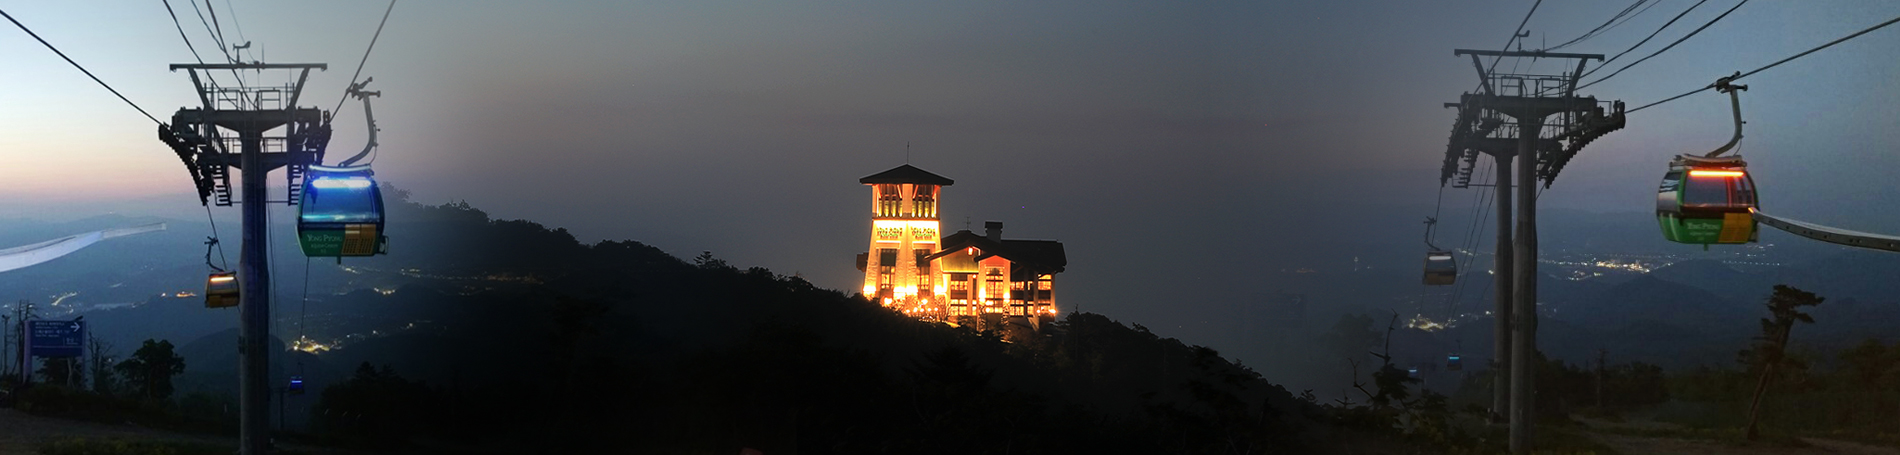 YONGPYONG RESORT in Winter